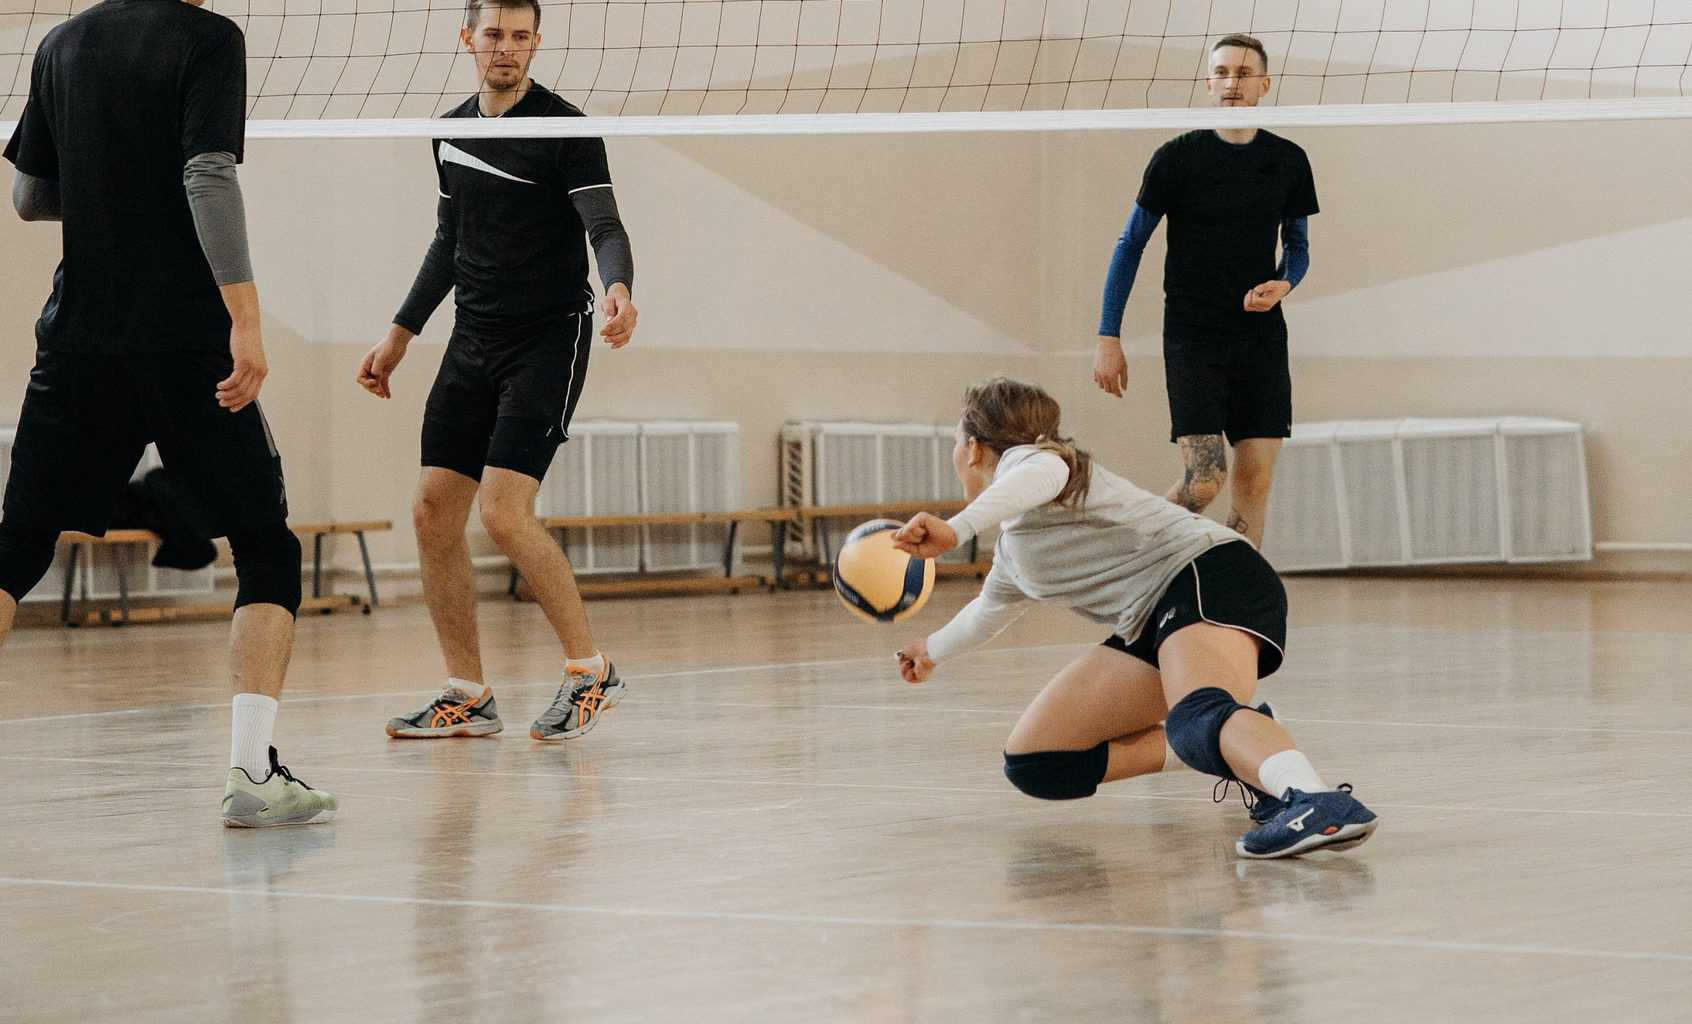 Volleyball player doing the dig